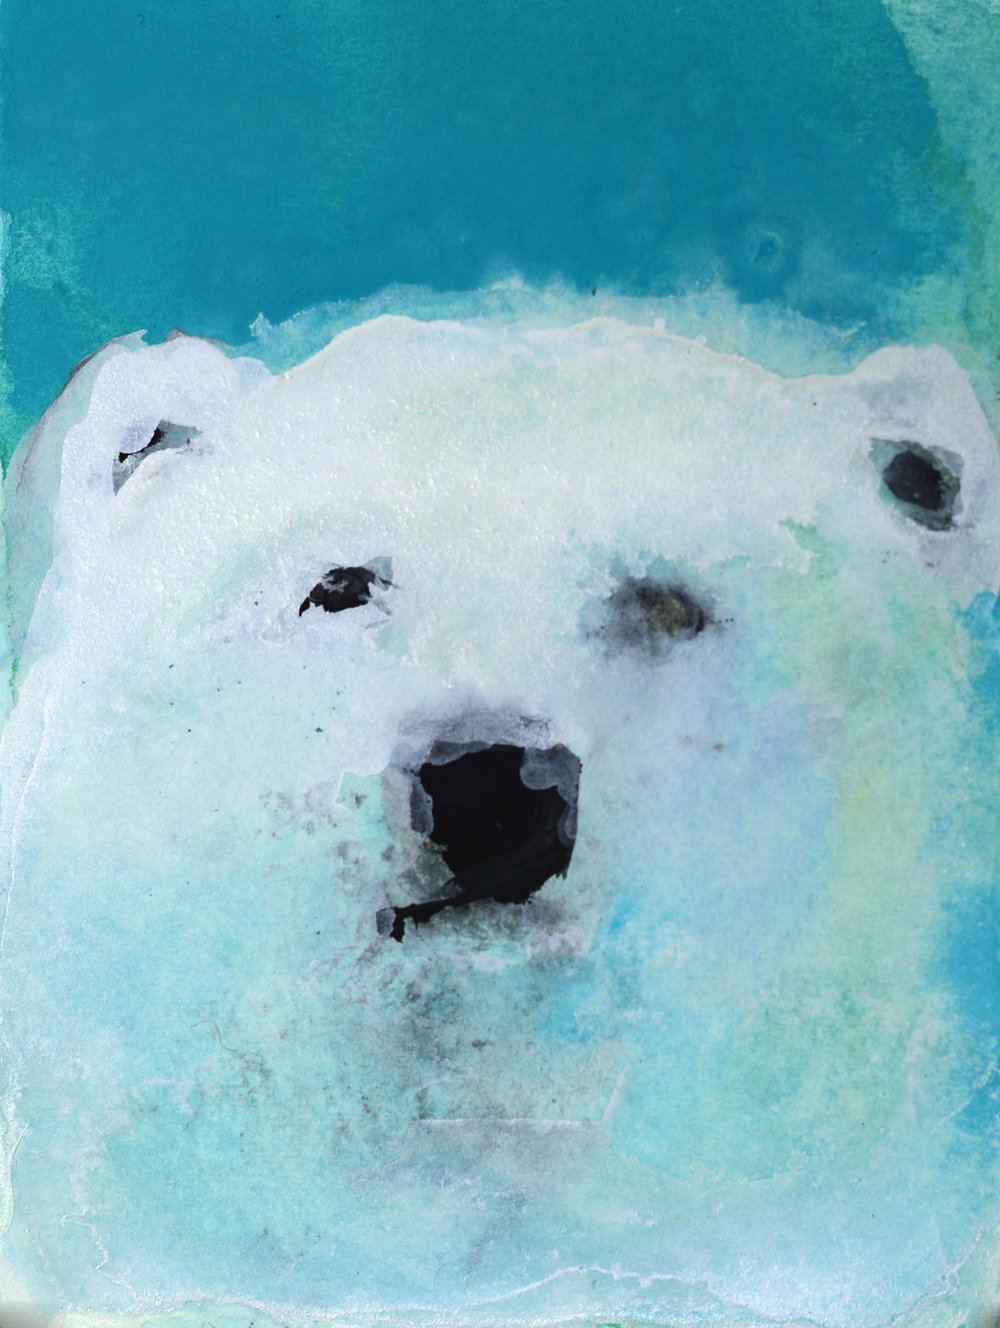 polar bear (on blue)_4x3 inset on 11x7.5 paper.jpg